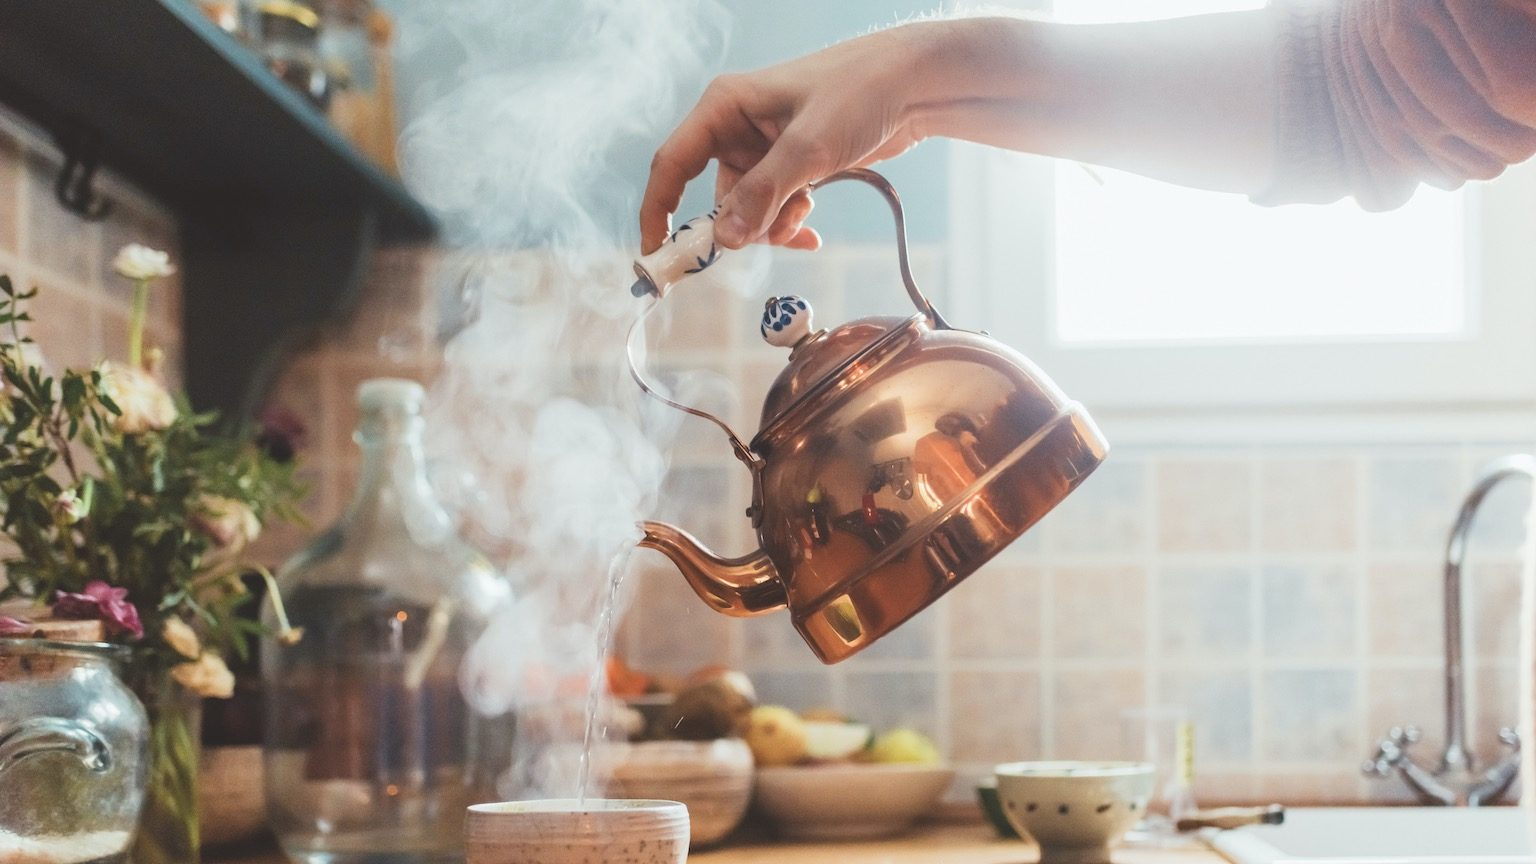 Man pouring hot water from the kettle